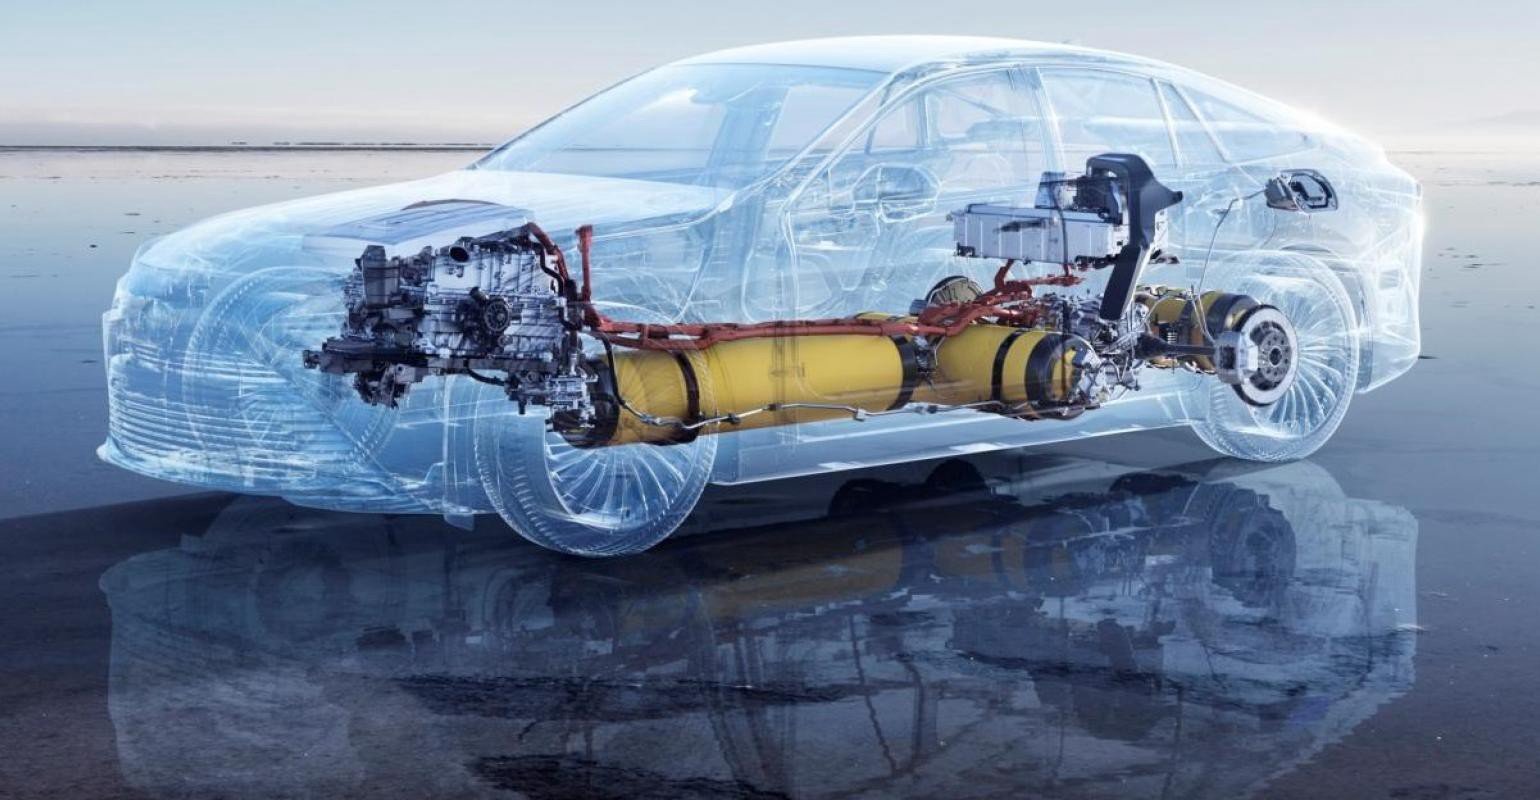 Toyota Mirai schematic view with hydrogen tanks and fuel cells